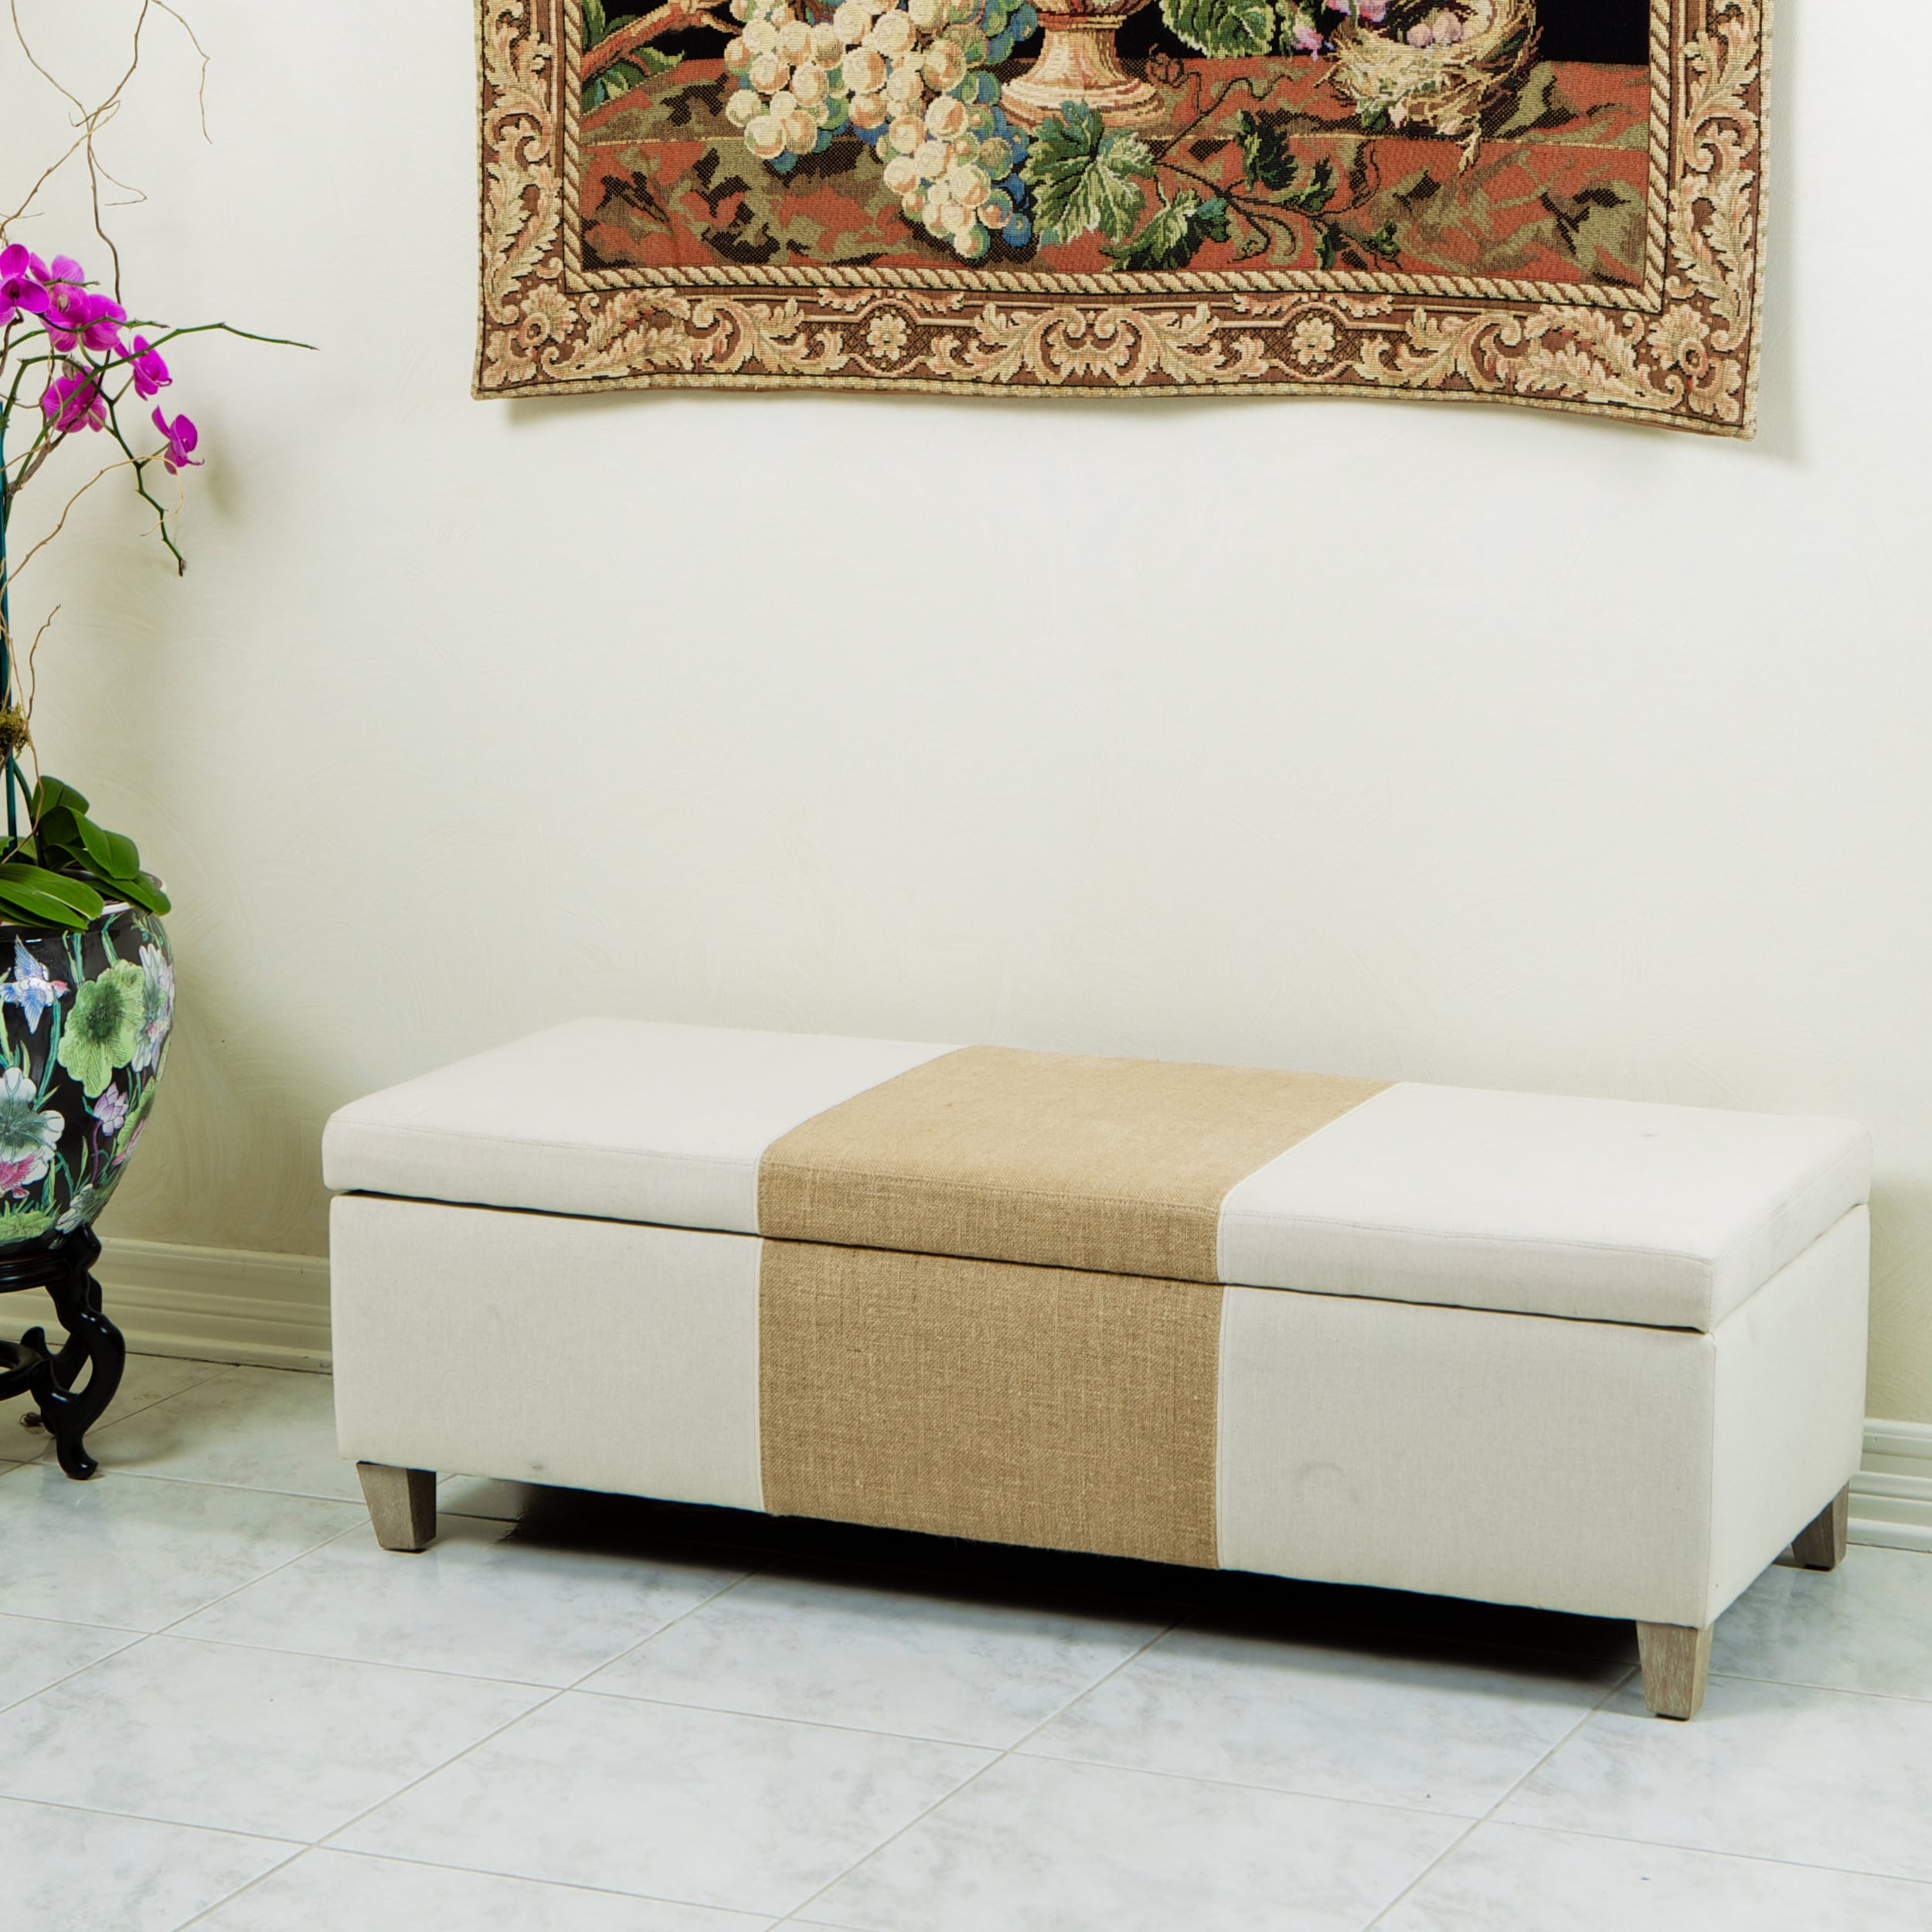 Christopher Knight Home Two Tone Fabric Storage Ottoman